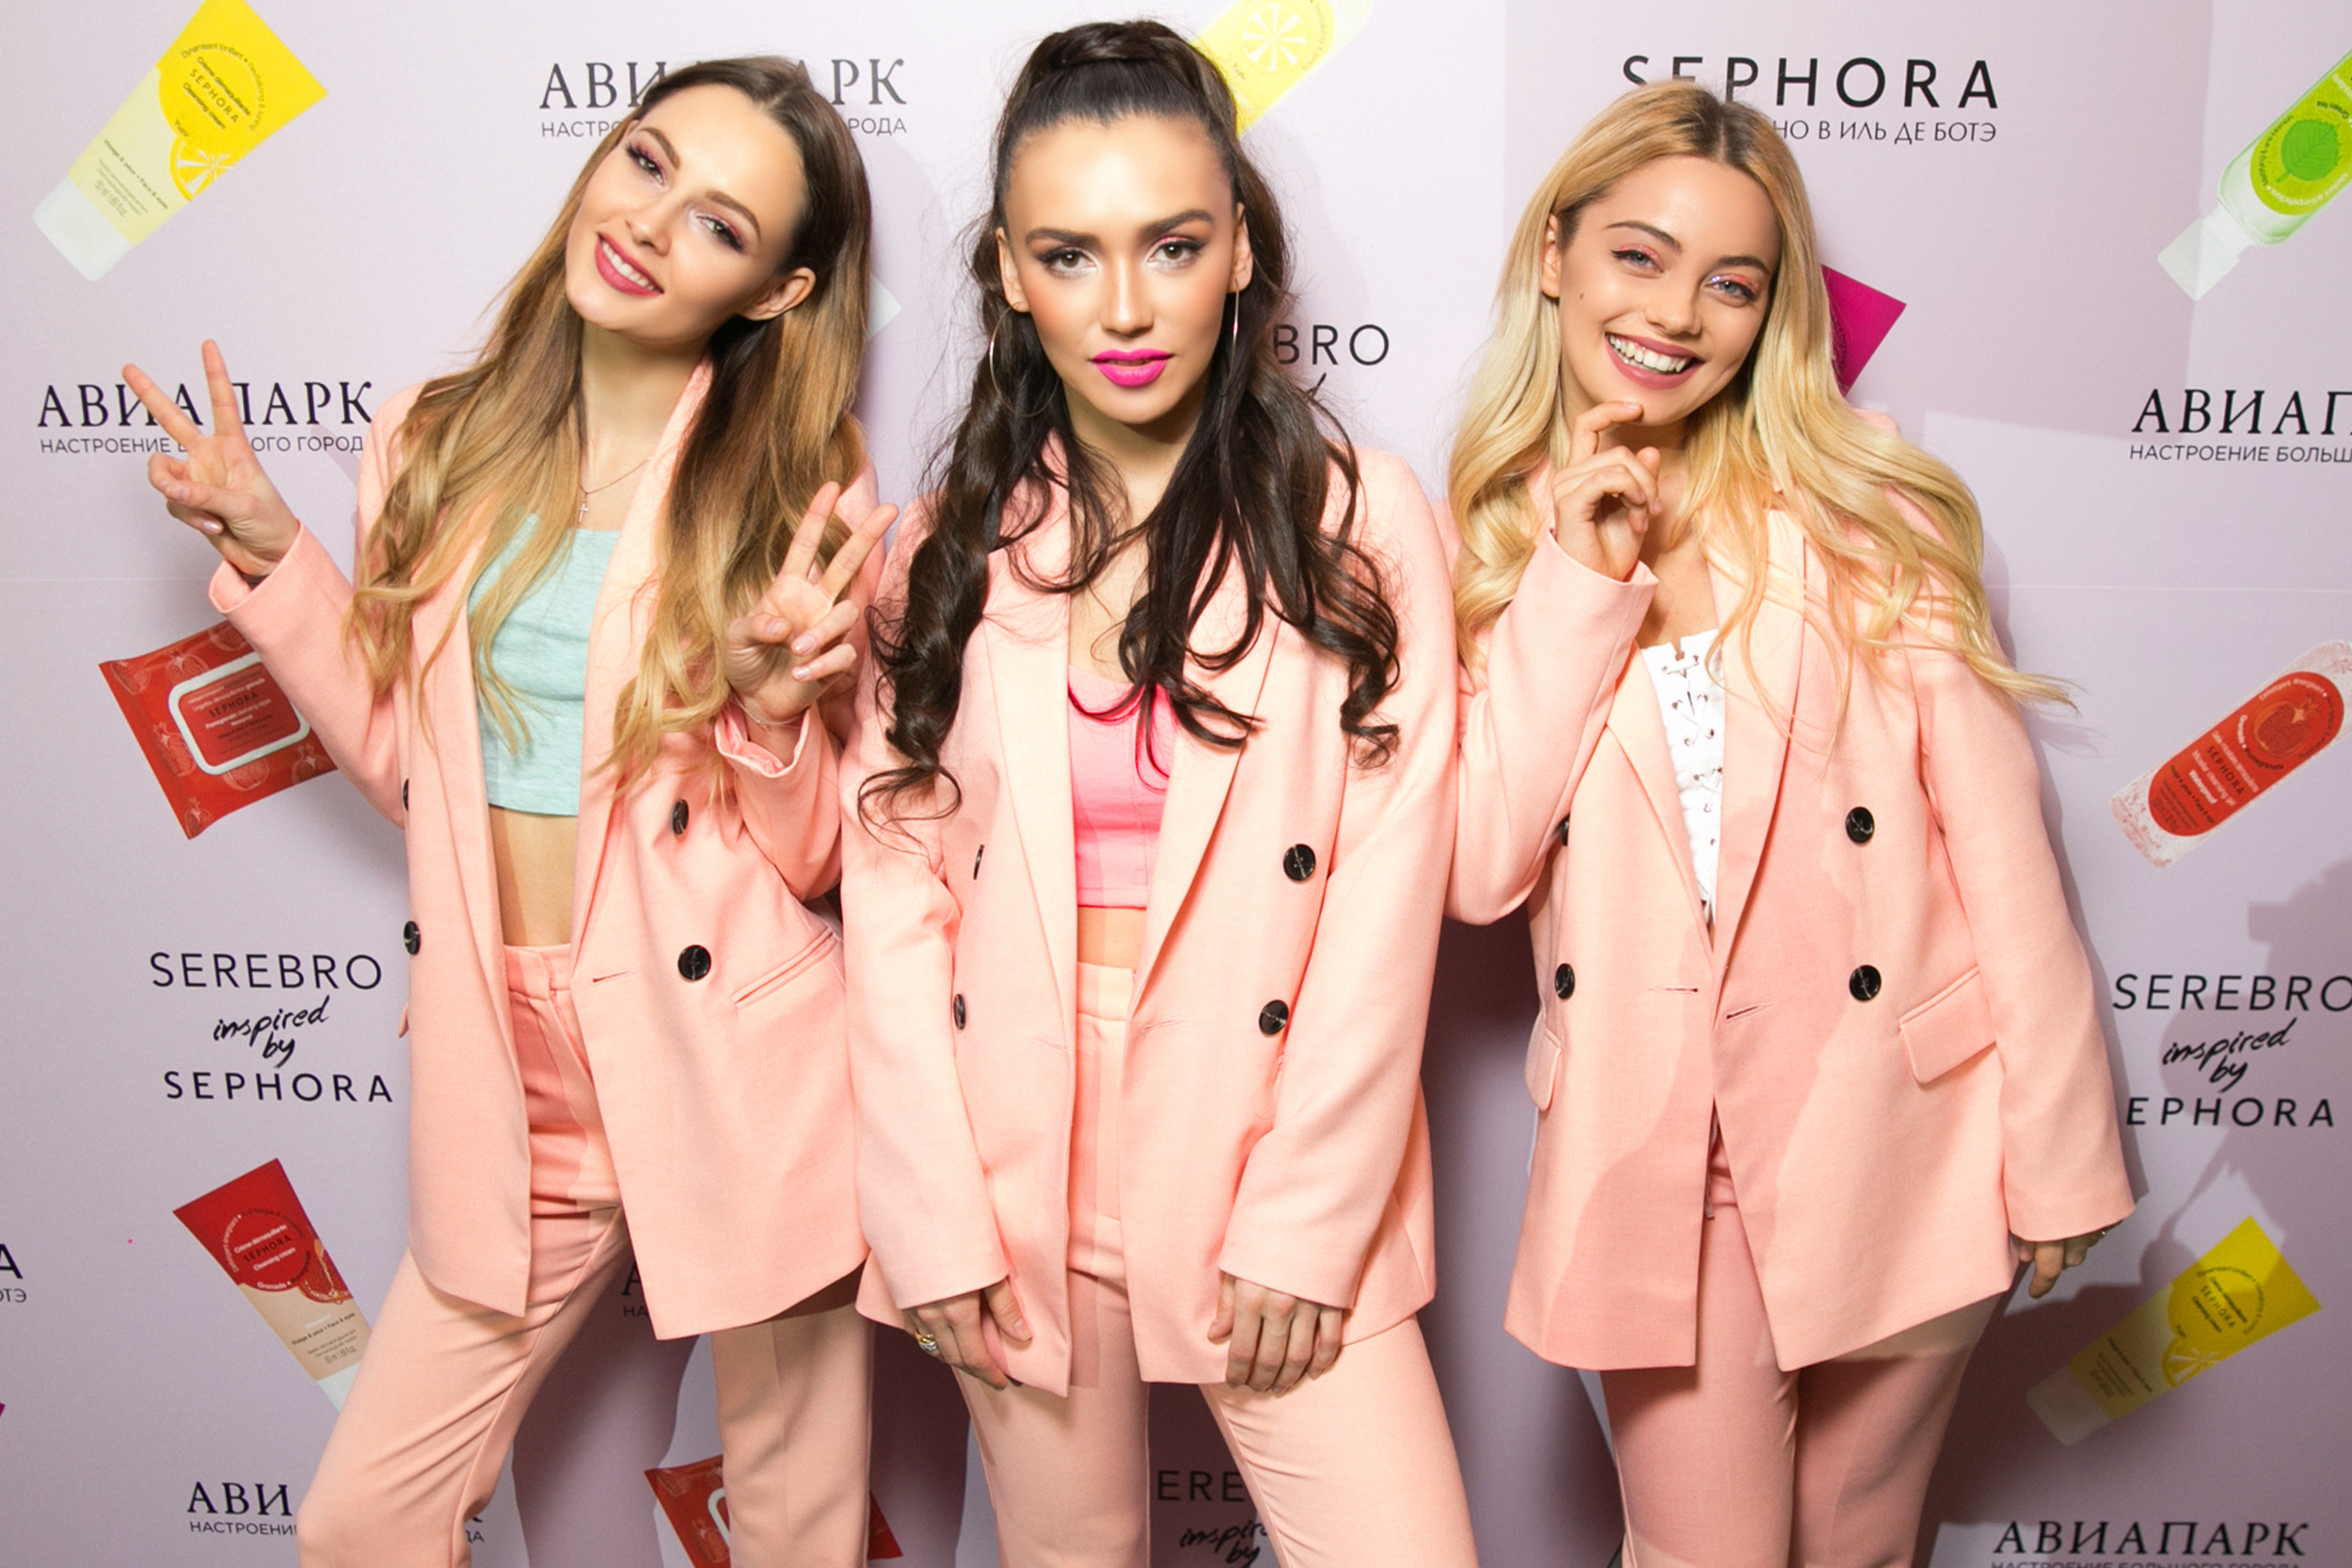 SEREBRO Inspired by SEPHORA